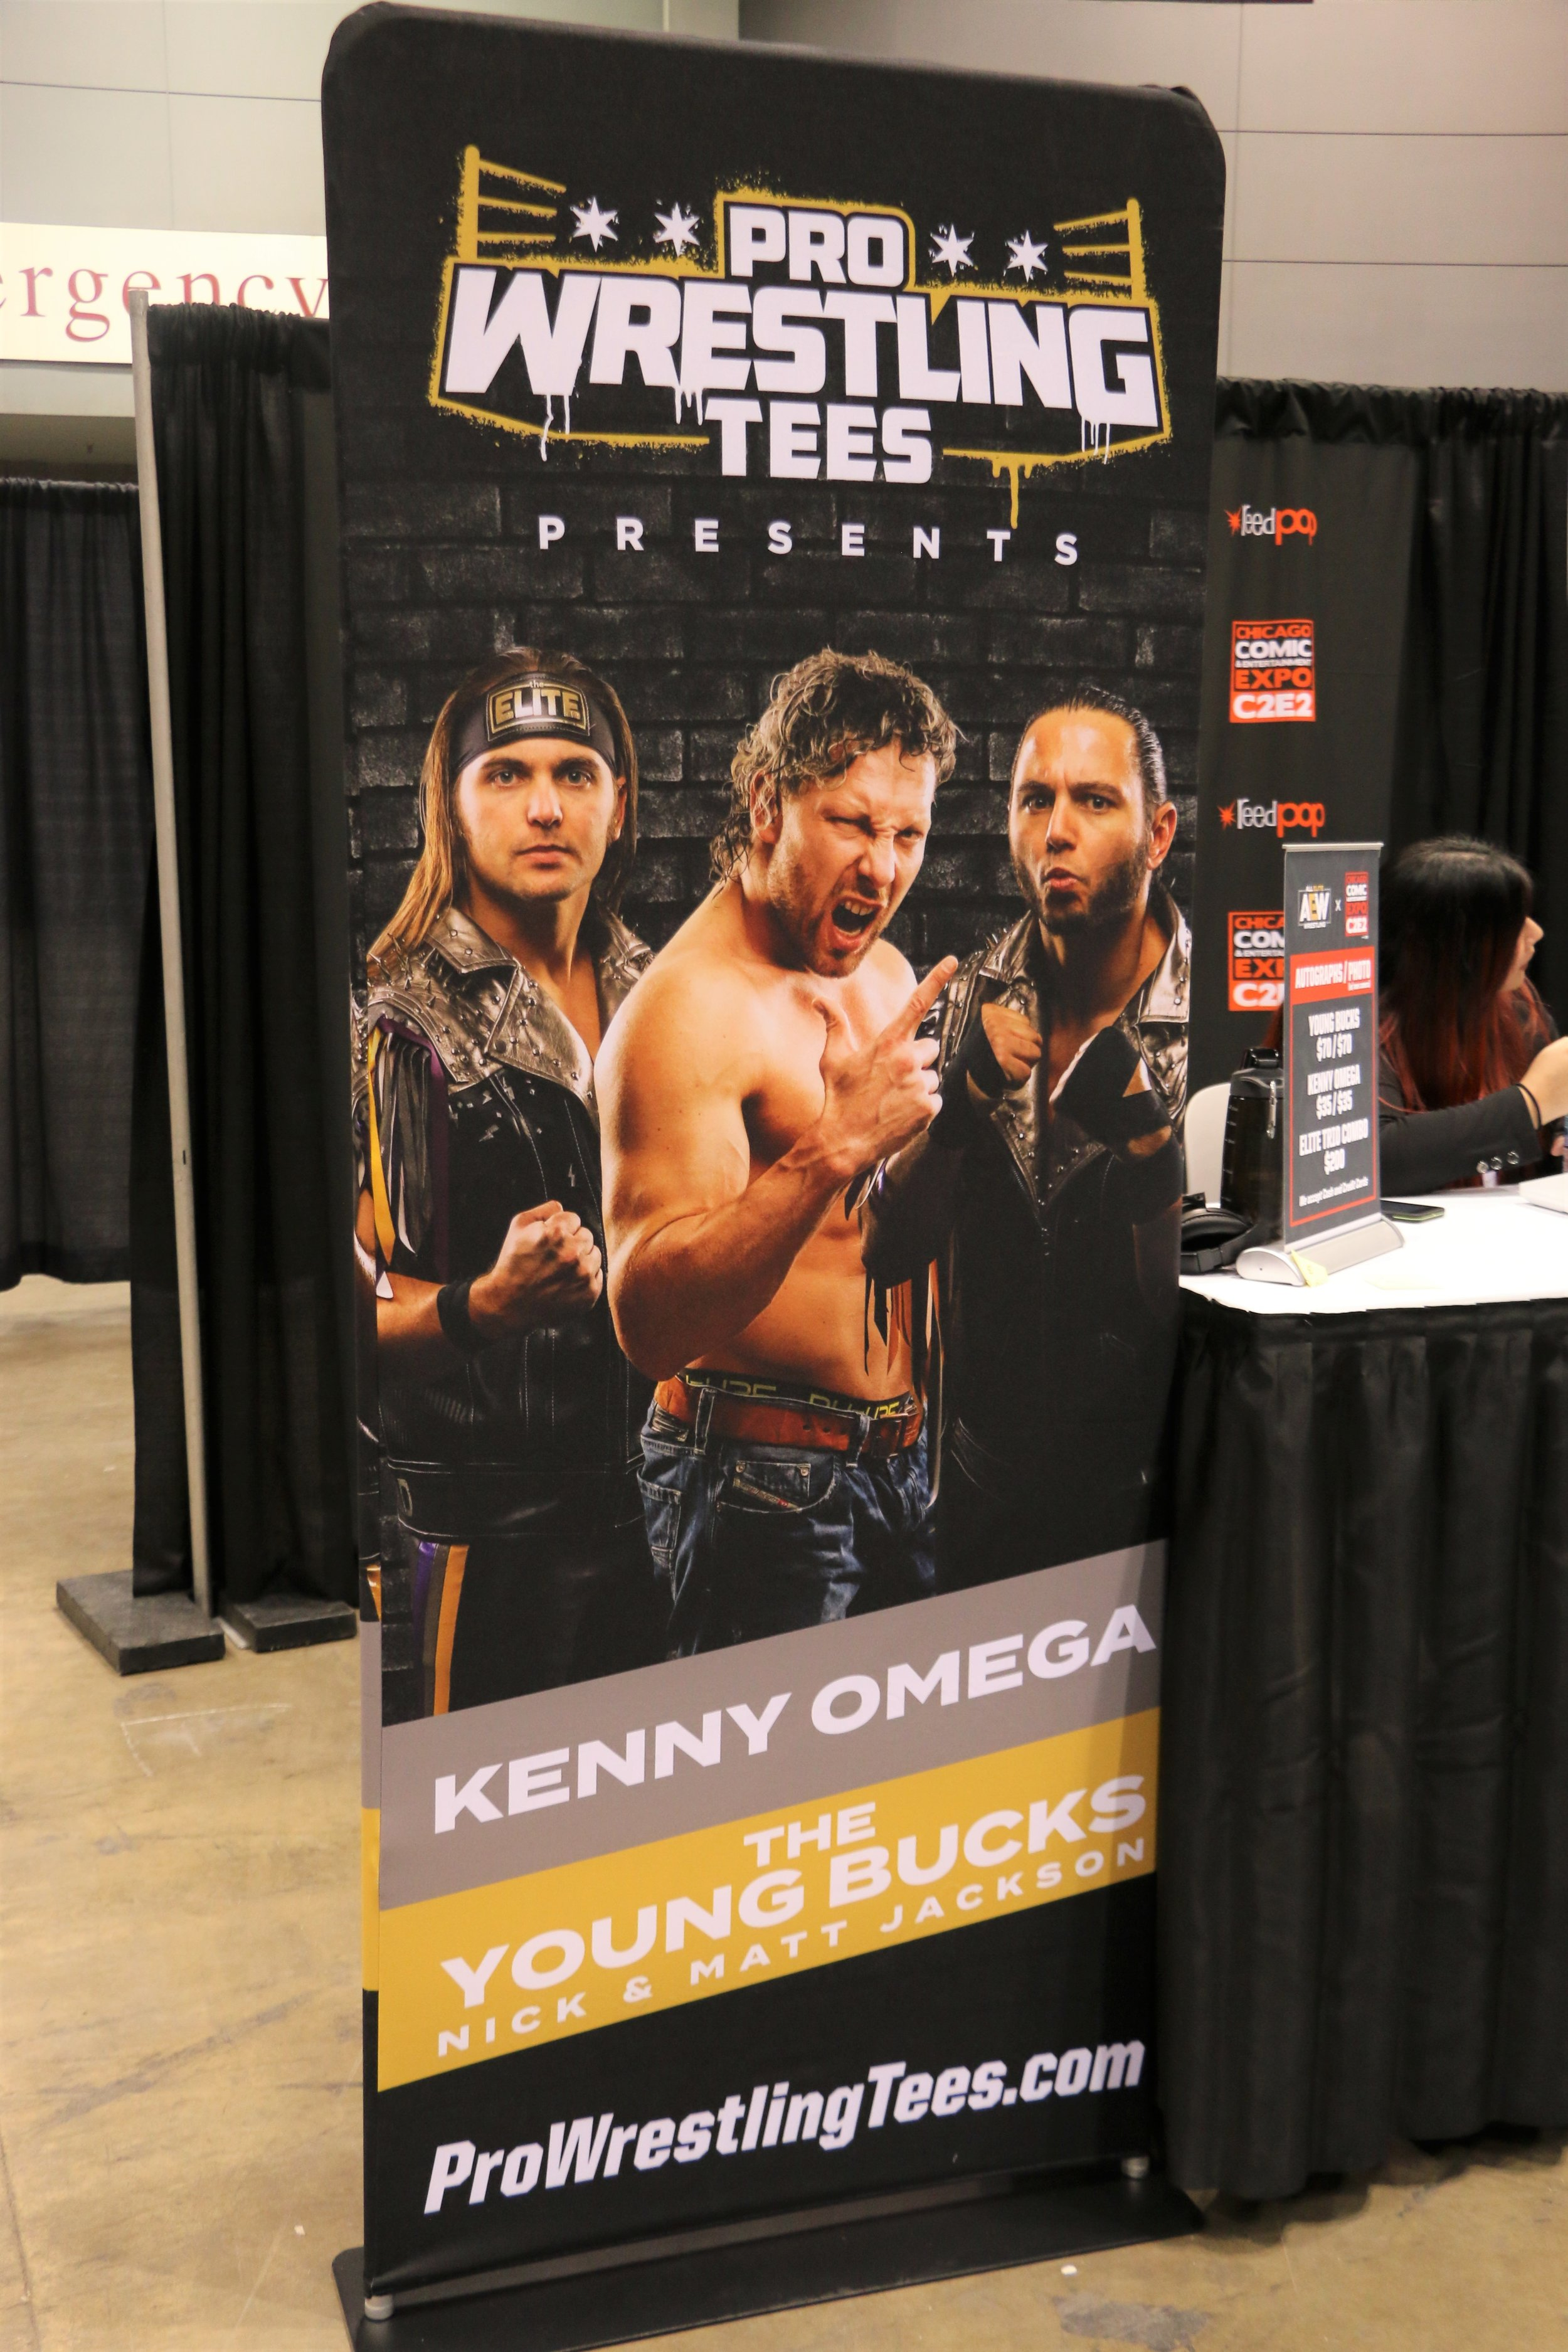 The Young Bucks and Kenny Omega signed plenty of autographs and took many photos with fans.